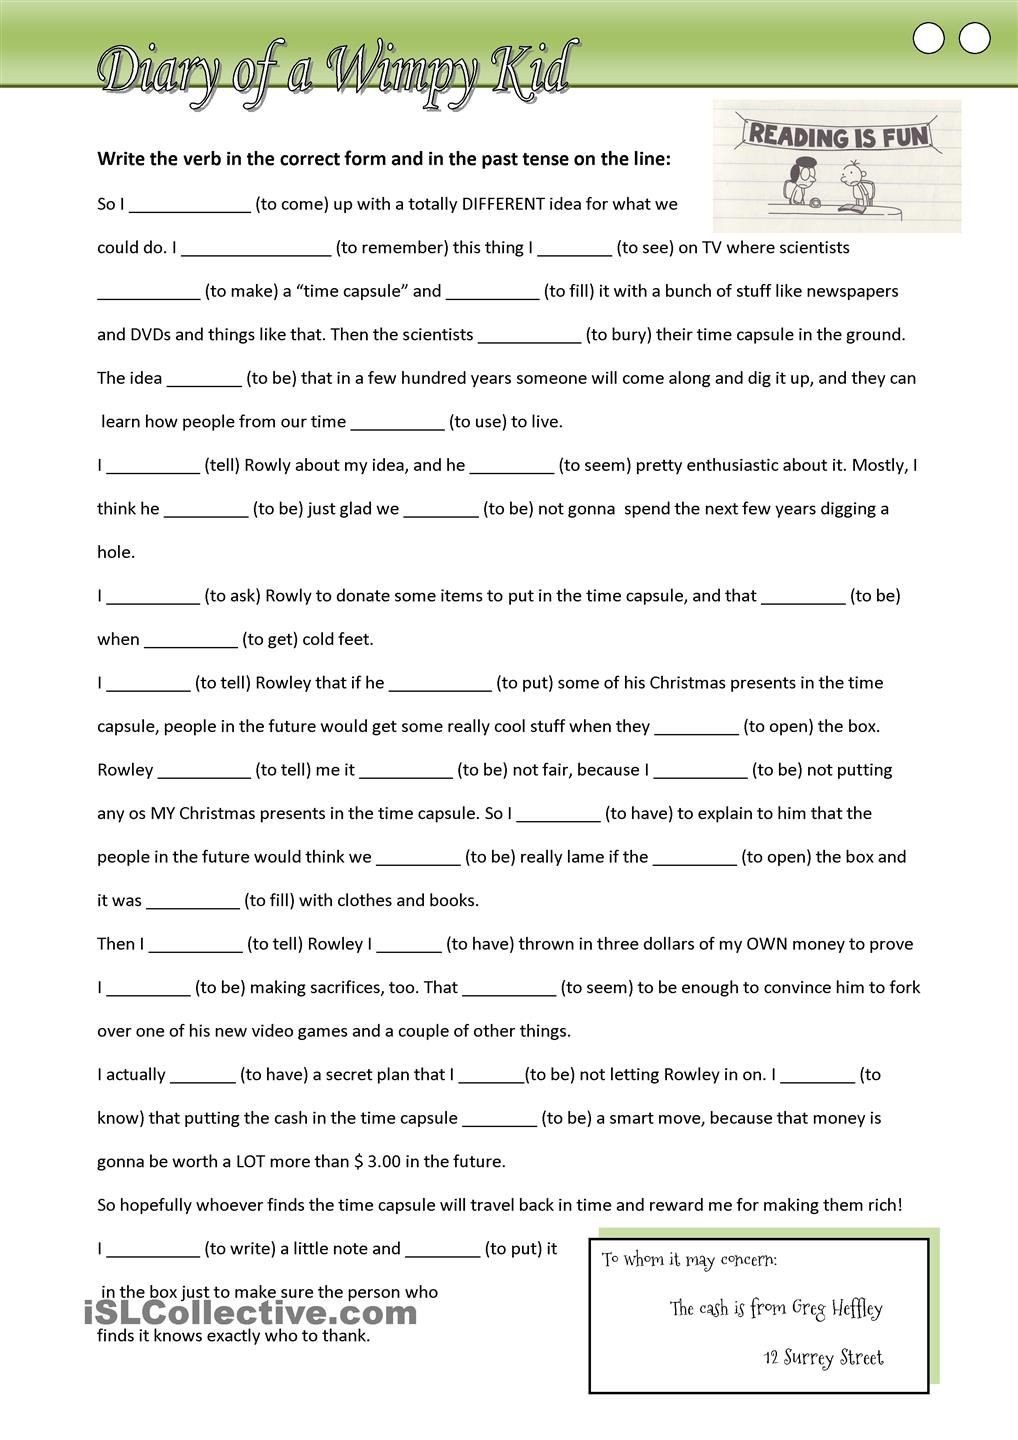 3rd Grade Verb Tense Worksheets Diary Of A Wimpy Kid Fill In Missing Verbs In the Past